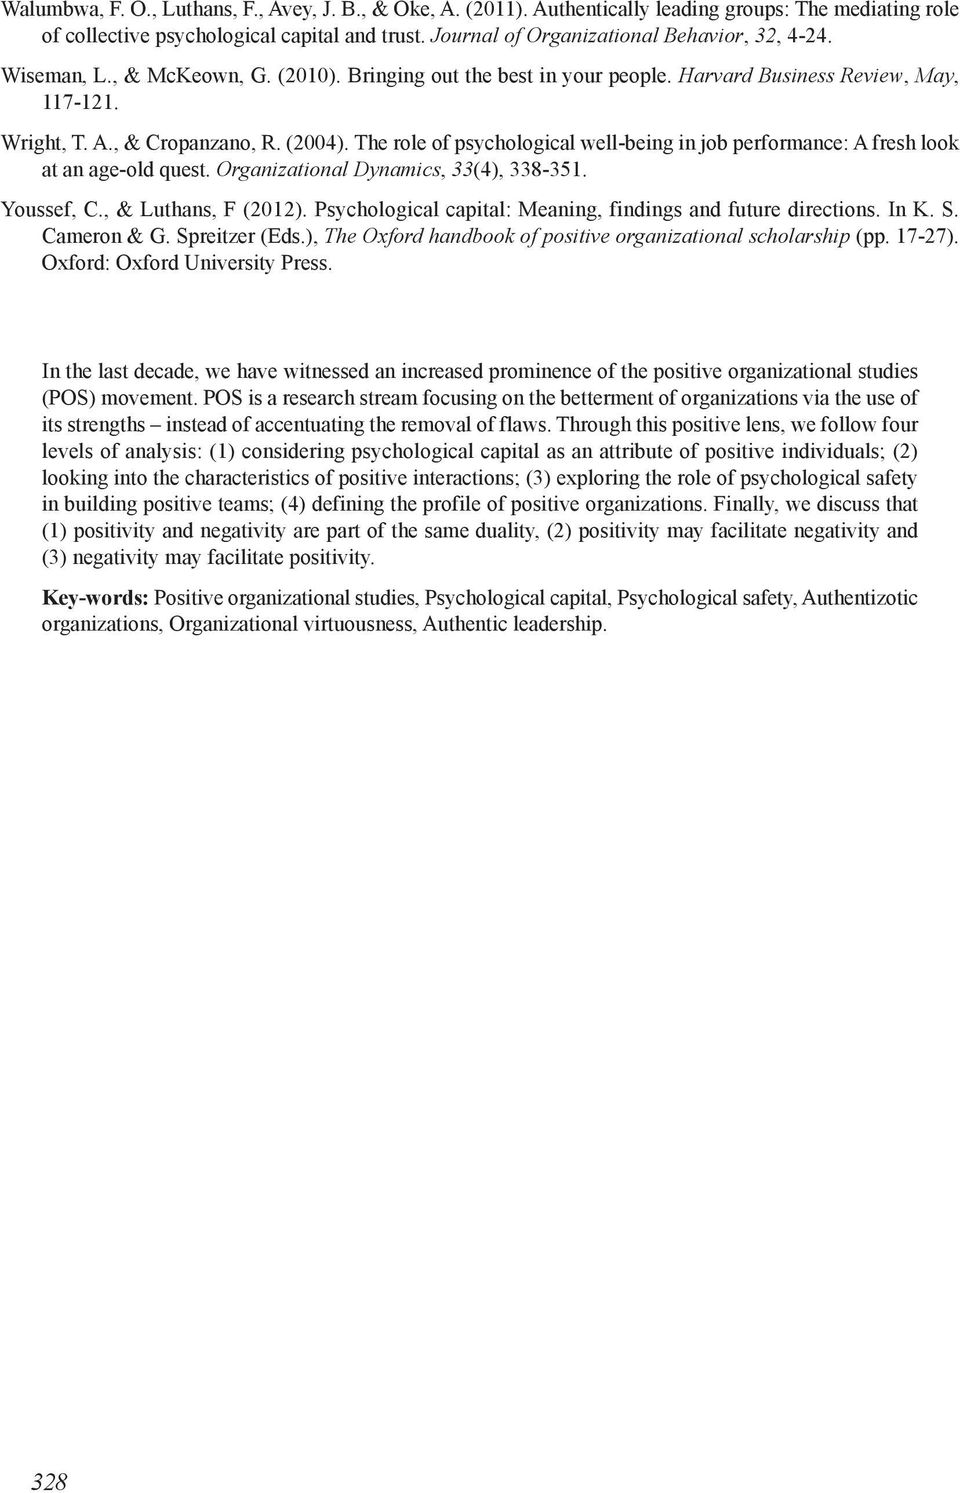 The role of psychological well-being in job performance: A fresh look at an age-old quest. Organizational Dynamics, 33(4), 338-351. Youssef, C., & Luthans, F (2012).